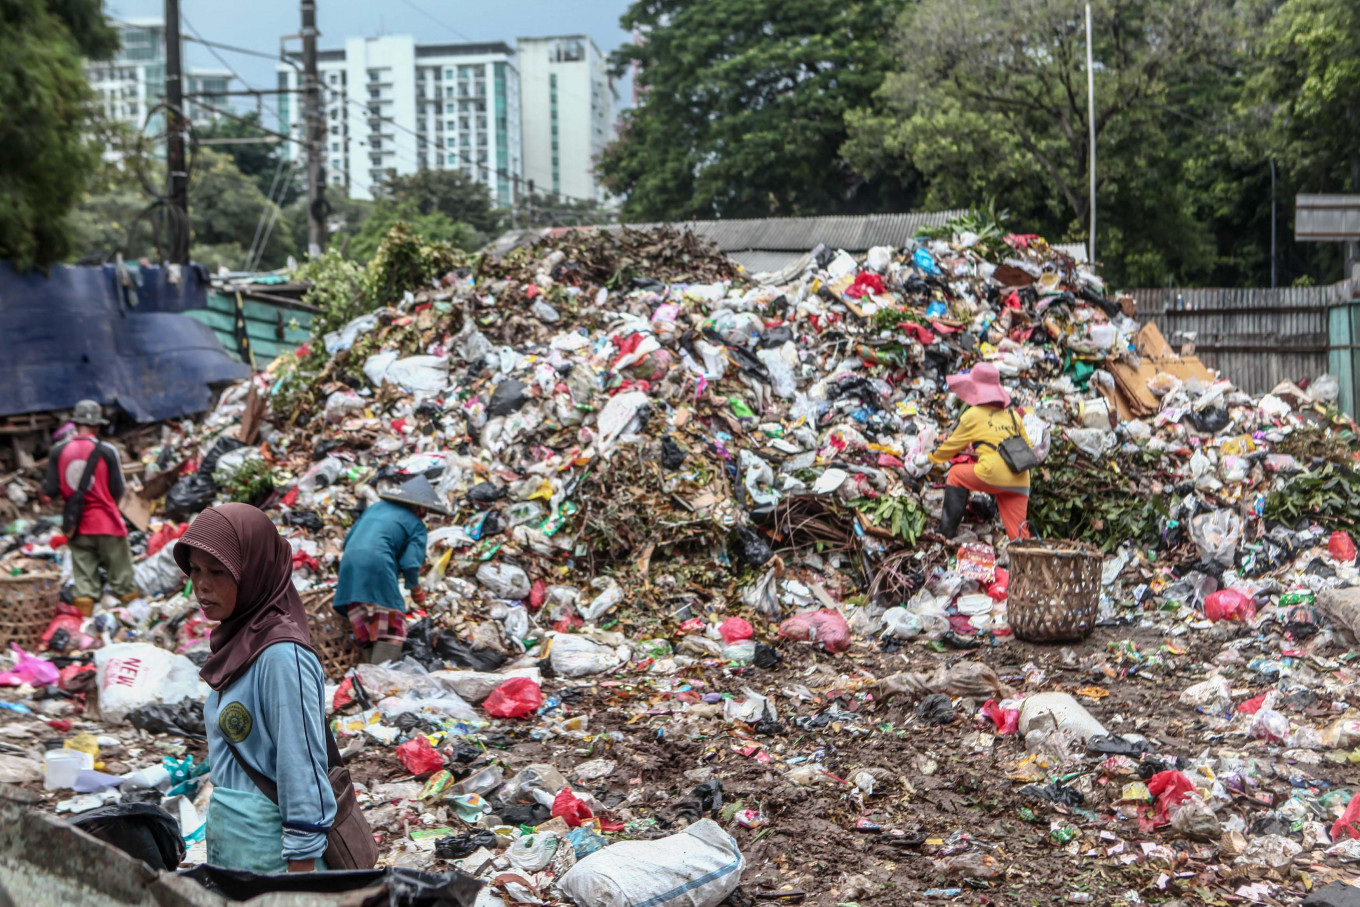 Jakarta's trash output down during COVID-19 but environmentalists warn of possible increase